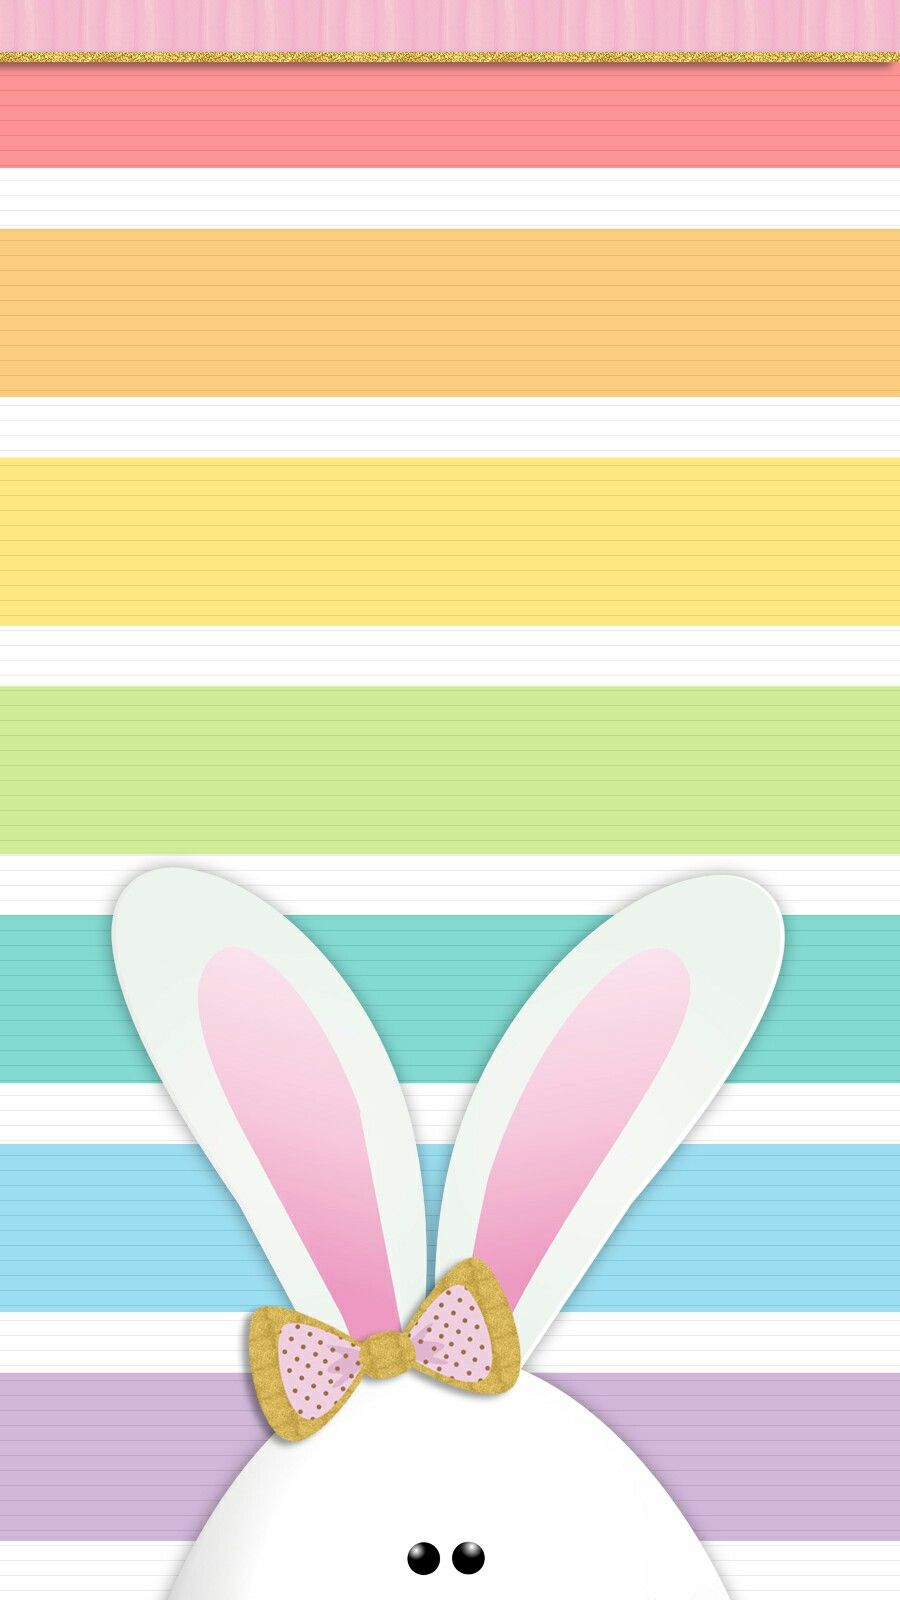 Easter Bunny Wallpaper Iphone Iphone Wallpaper Easter Easter